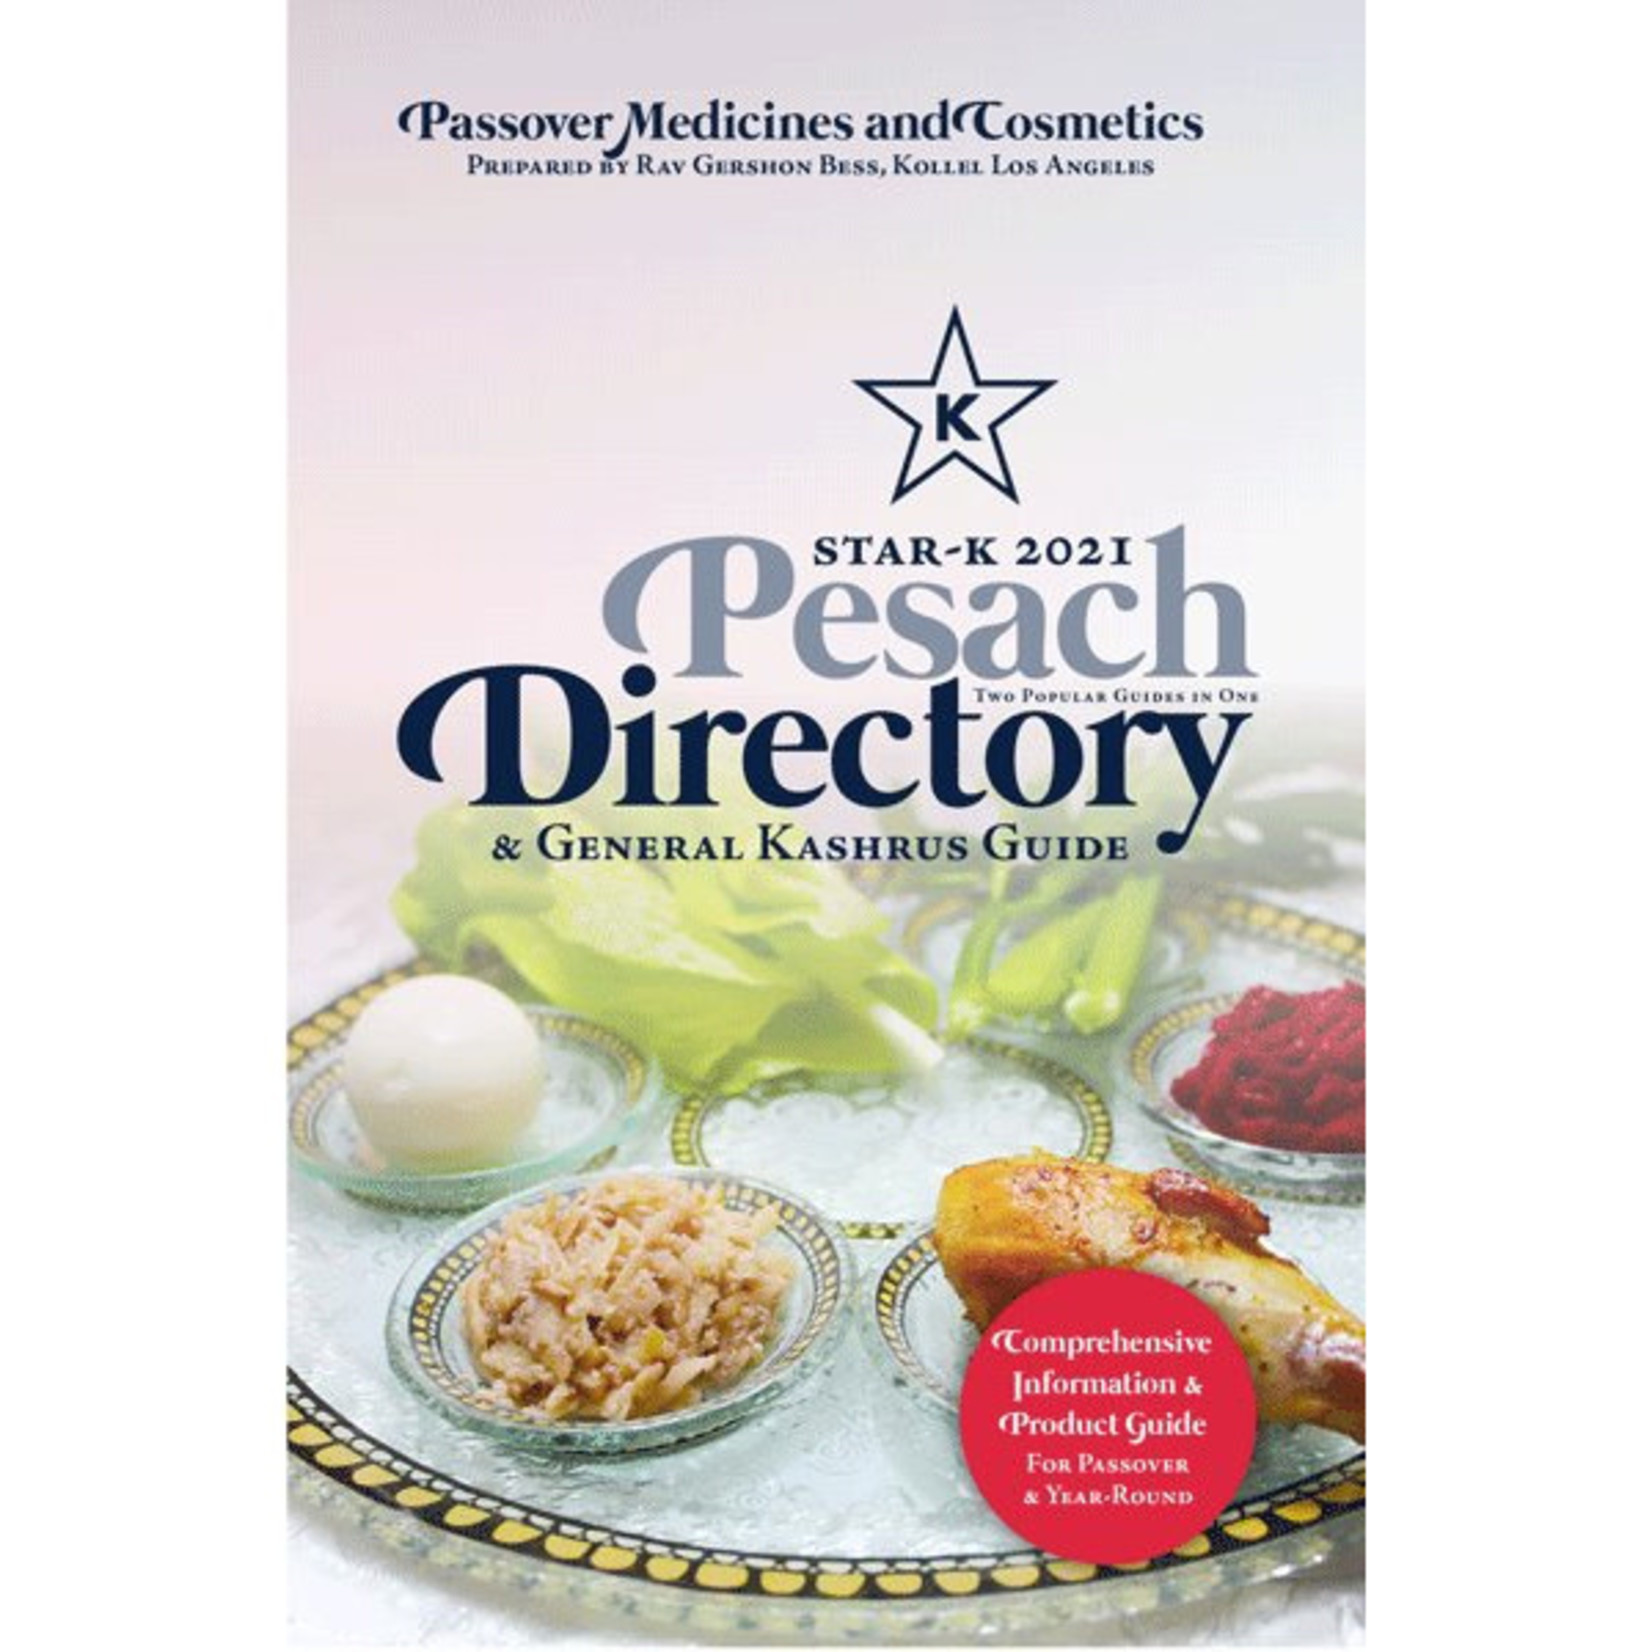 Star-K Passover Guide